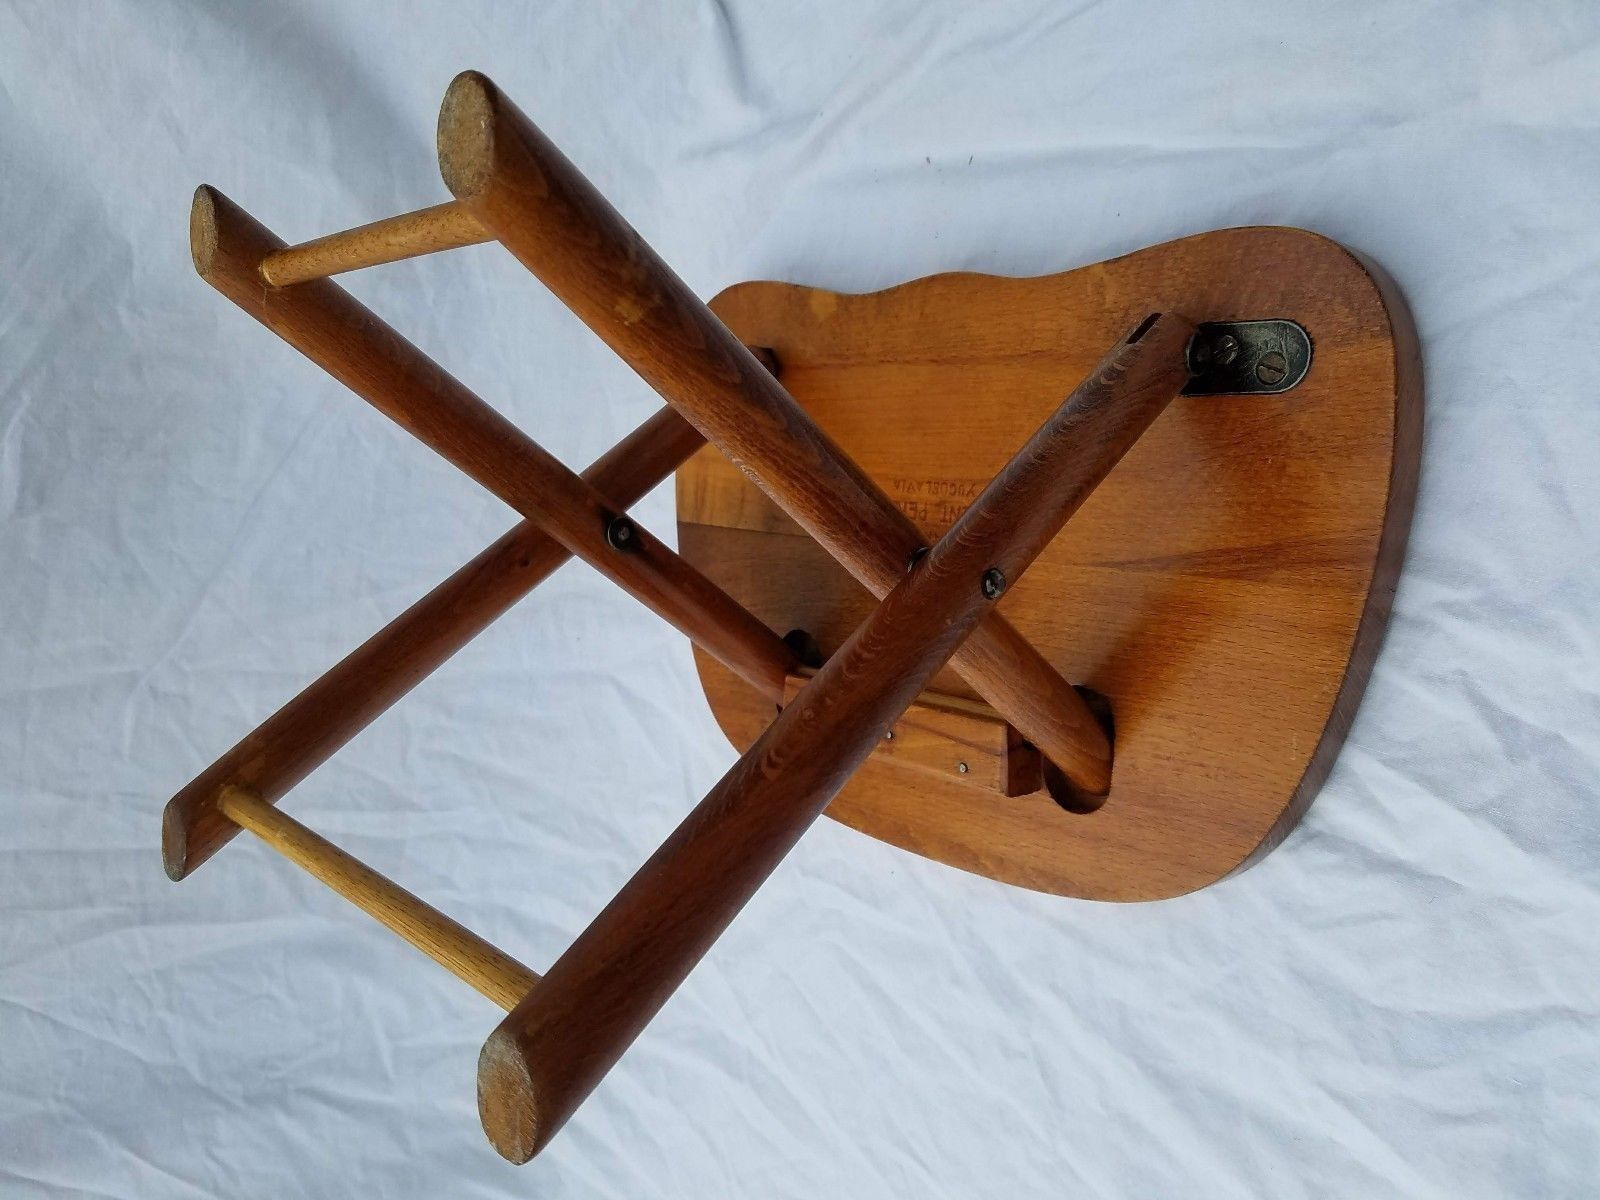 Astounding Vintage Nevco Wood Stool Fold And Foldn And 50 Similar Items Onthecornerstone Fun Painted Chair Ideas Images Onthecornerstoneorg